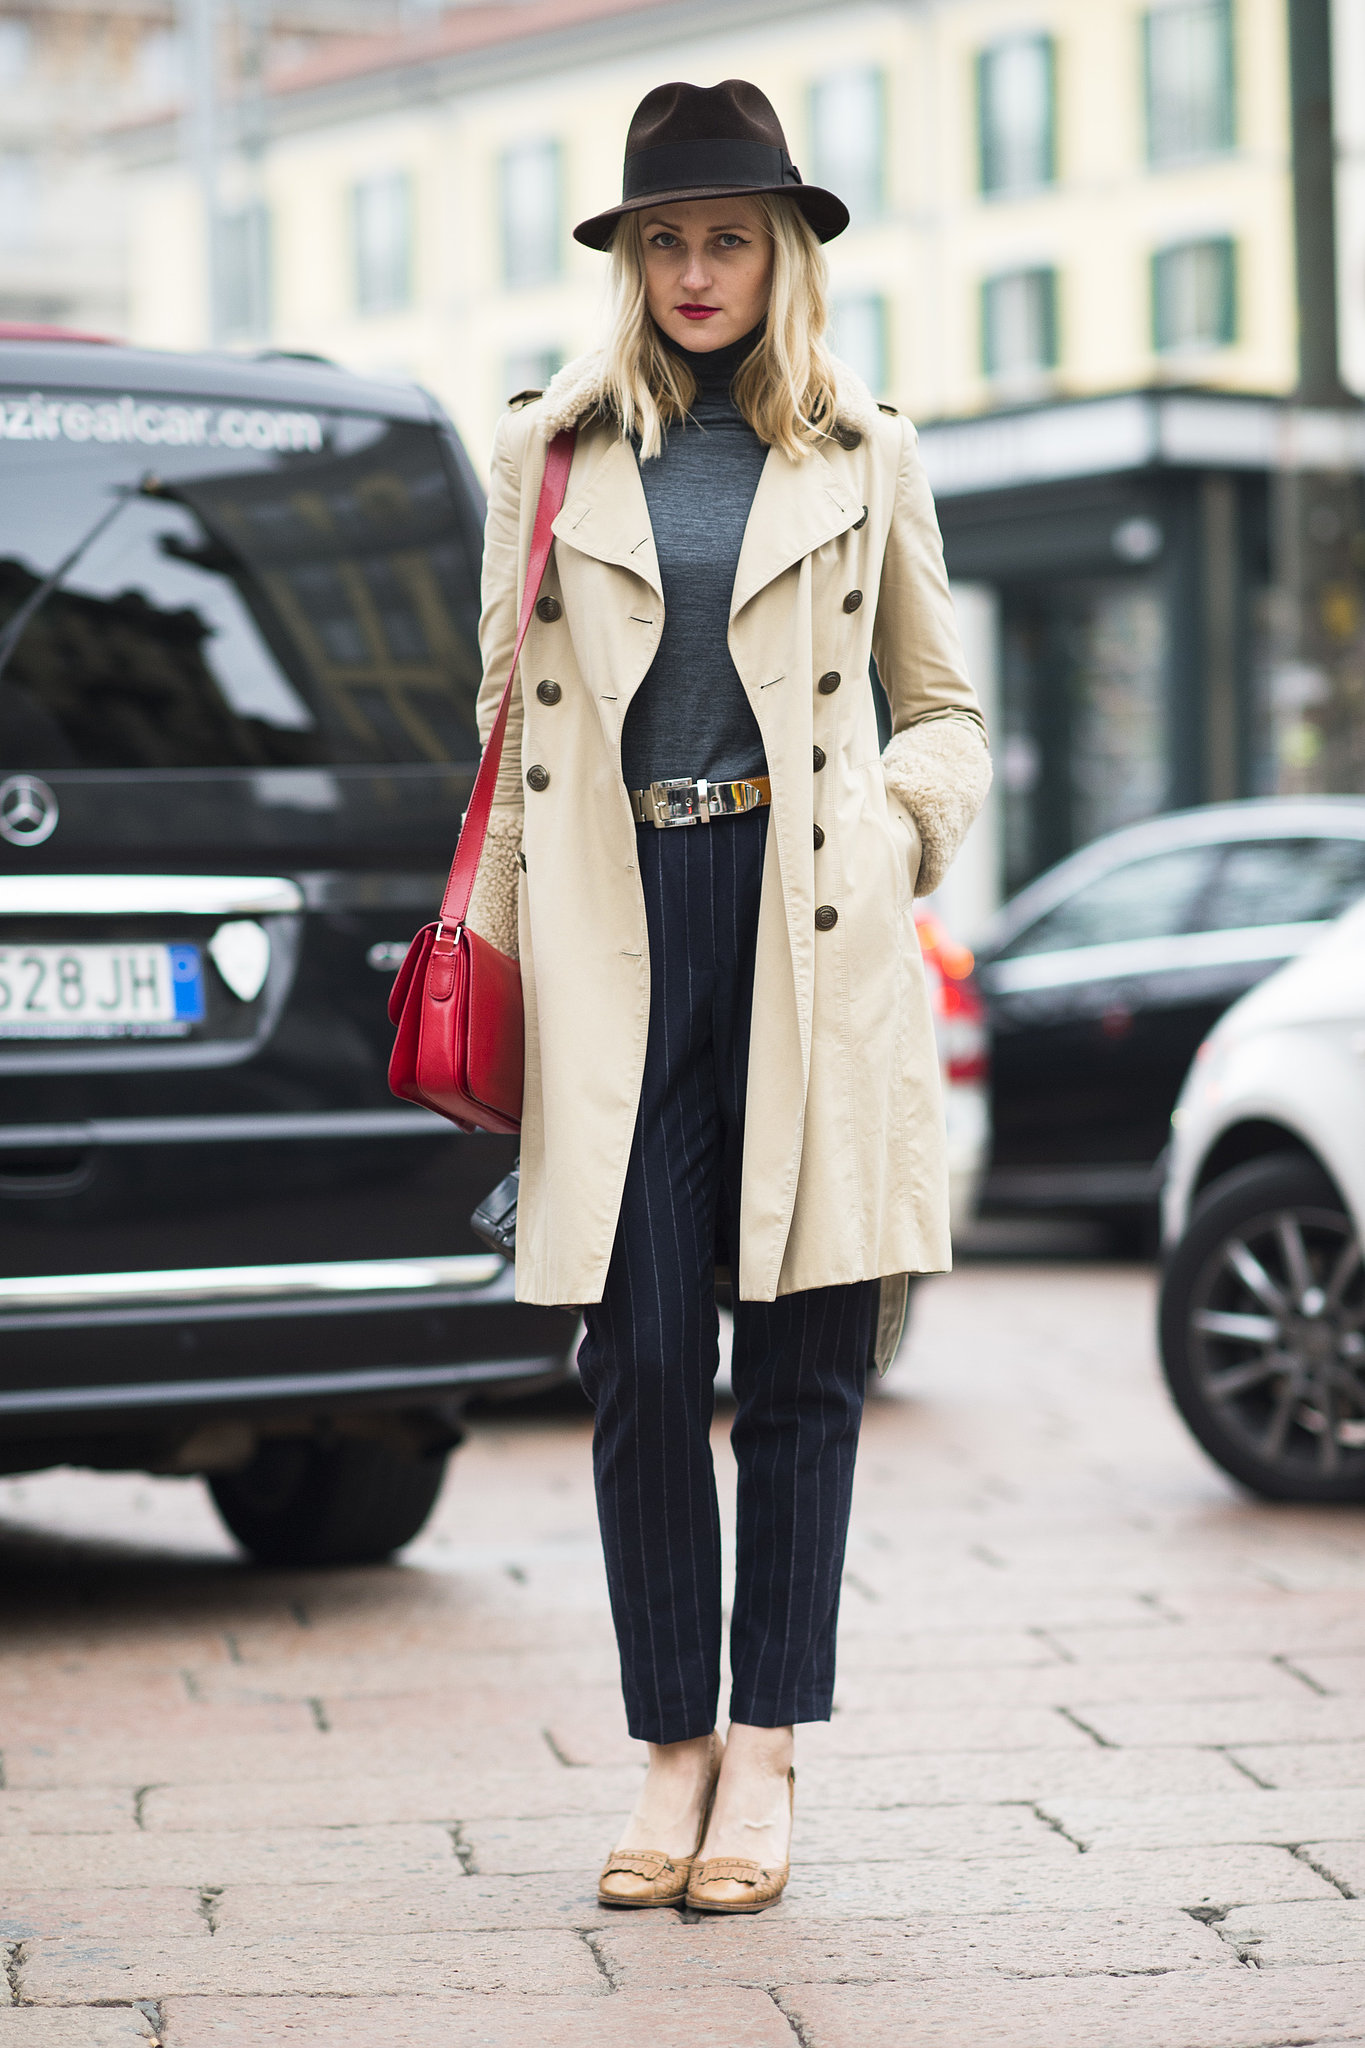 You can't go wrong with a trench coat and pinstripes, even if you're a girl.  Source: Le 21ème | Adam Katz Sinding